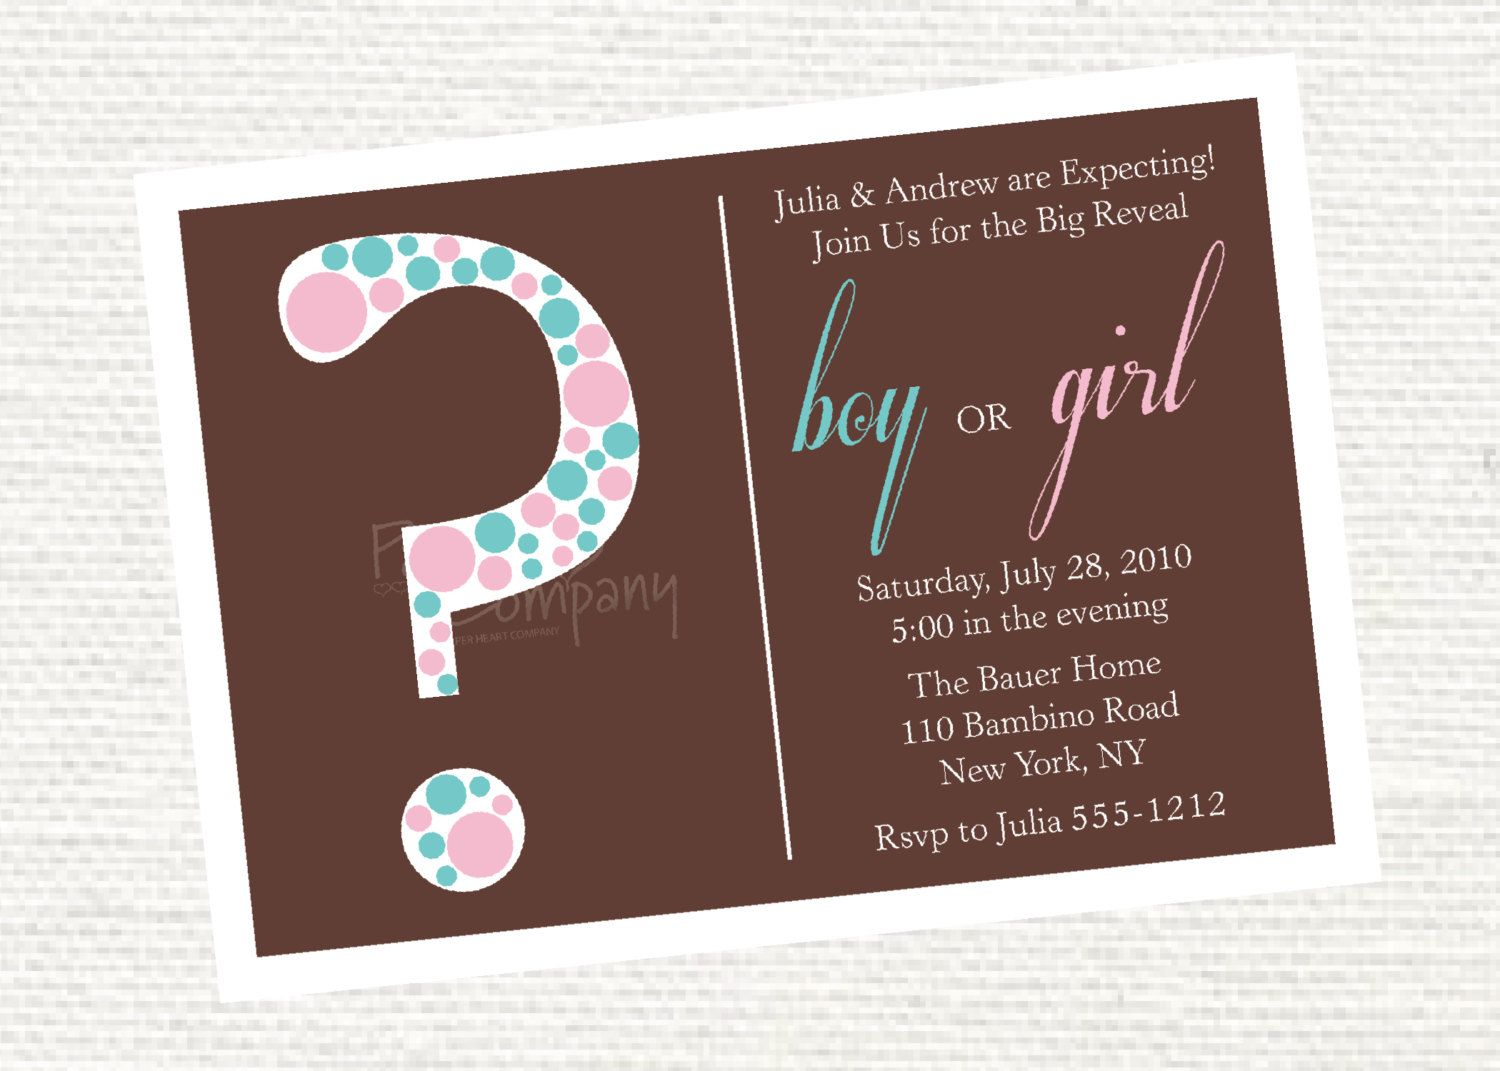 Invitation Wording - simplistic: Scarlett and James are Expecting ...